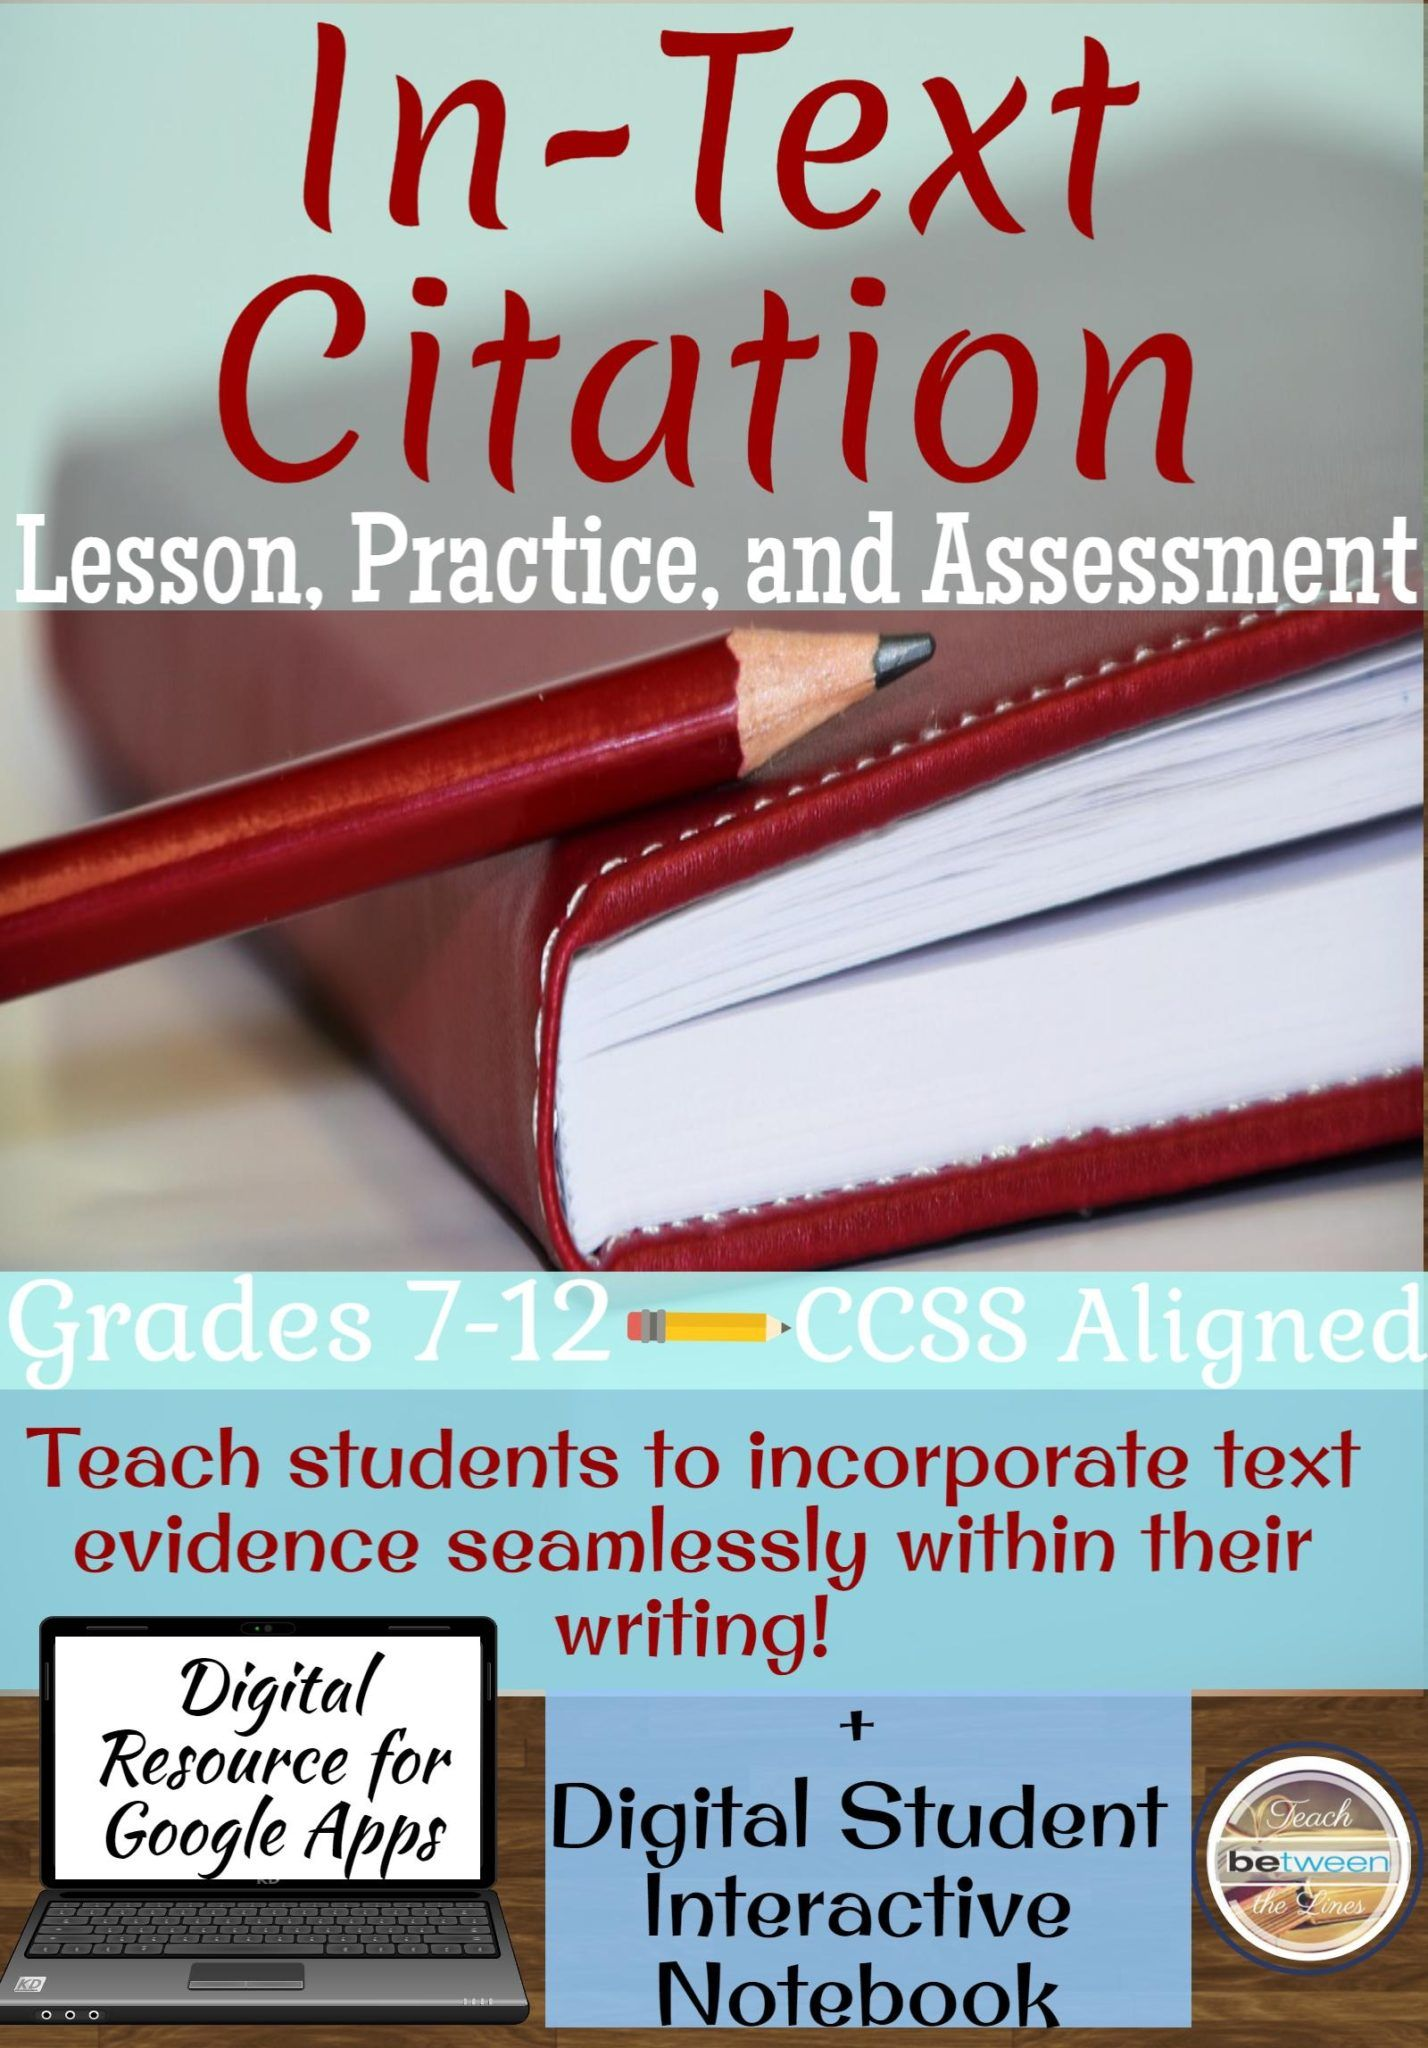 In Text Citation Lesson Practice And Assessment Mla 8th Edition The Best Of Teacher Entrepreneur Marketing Cooperative Teaching Writing Parenthtical Notation Paraphrasing